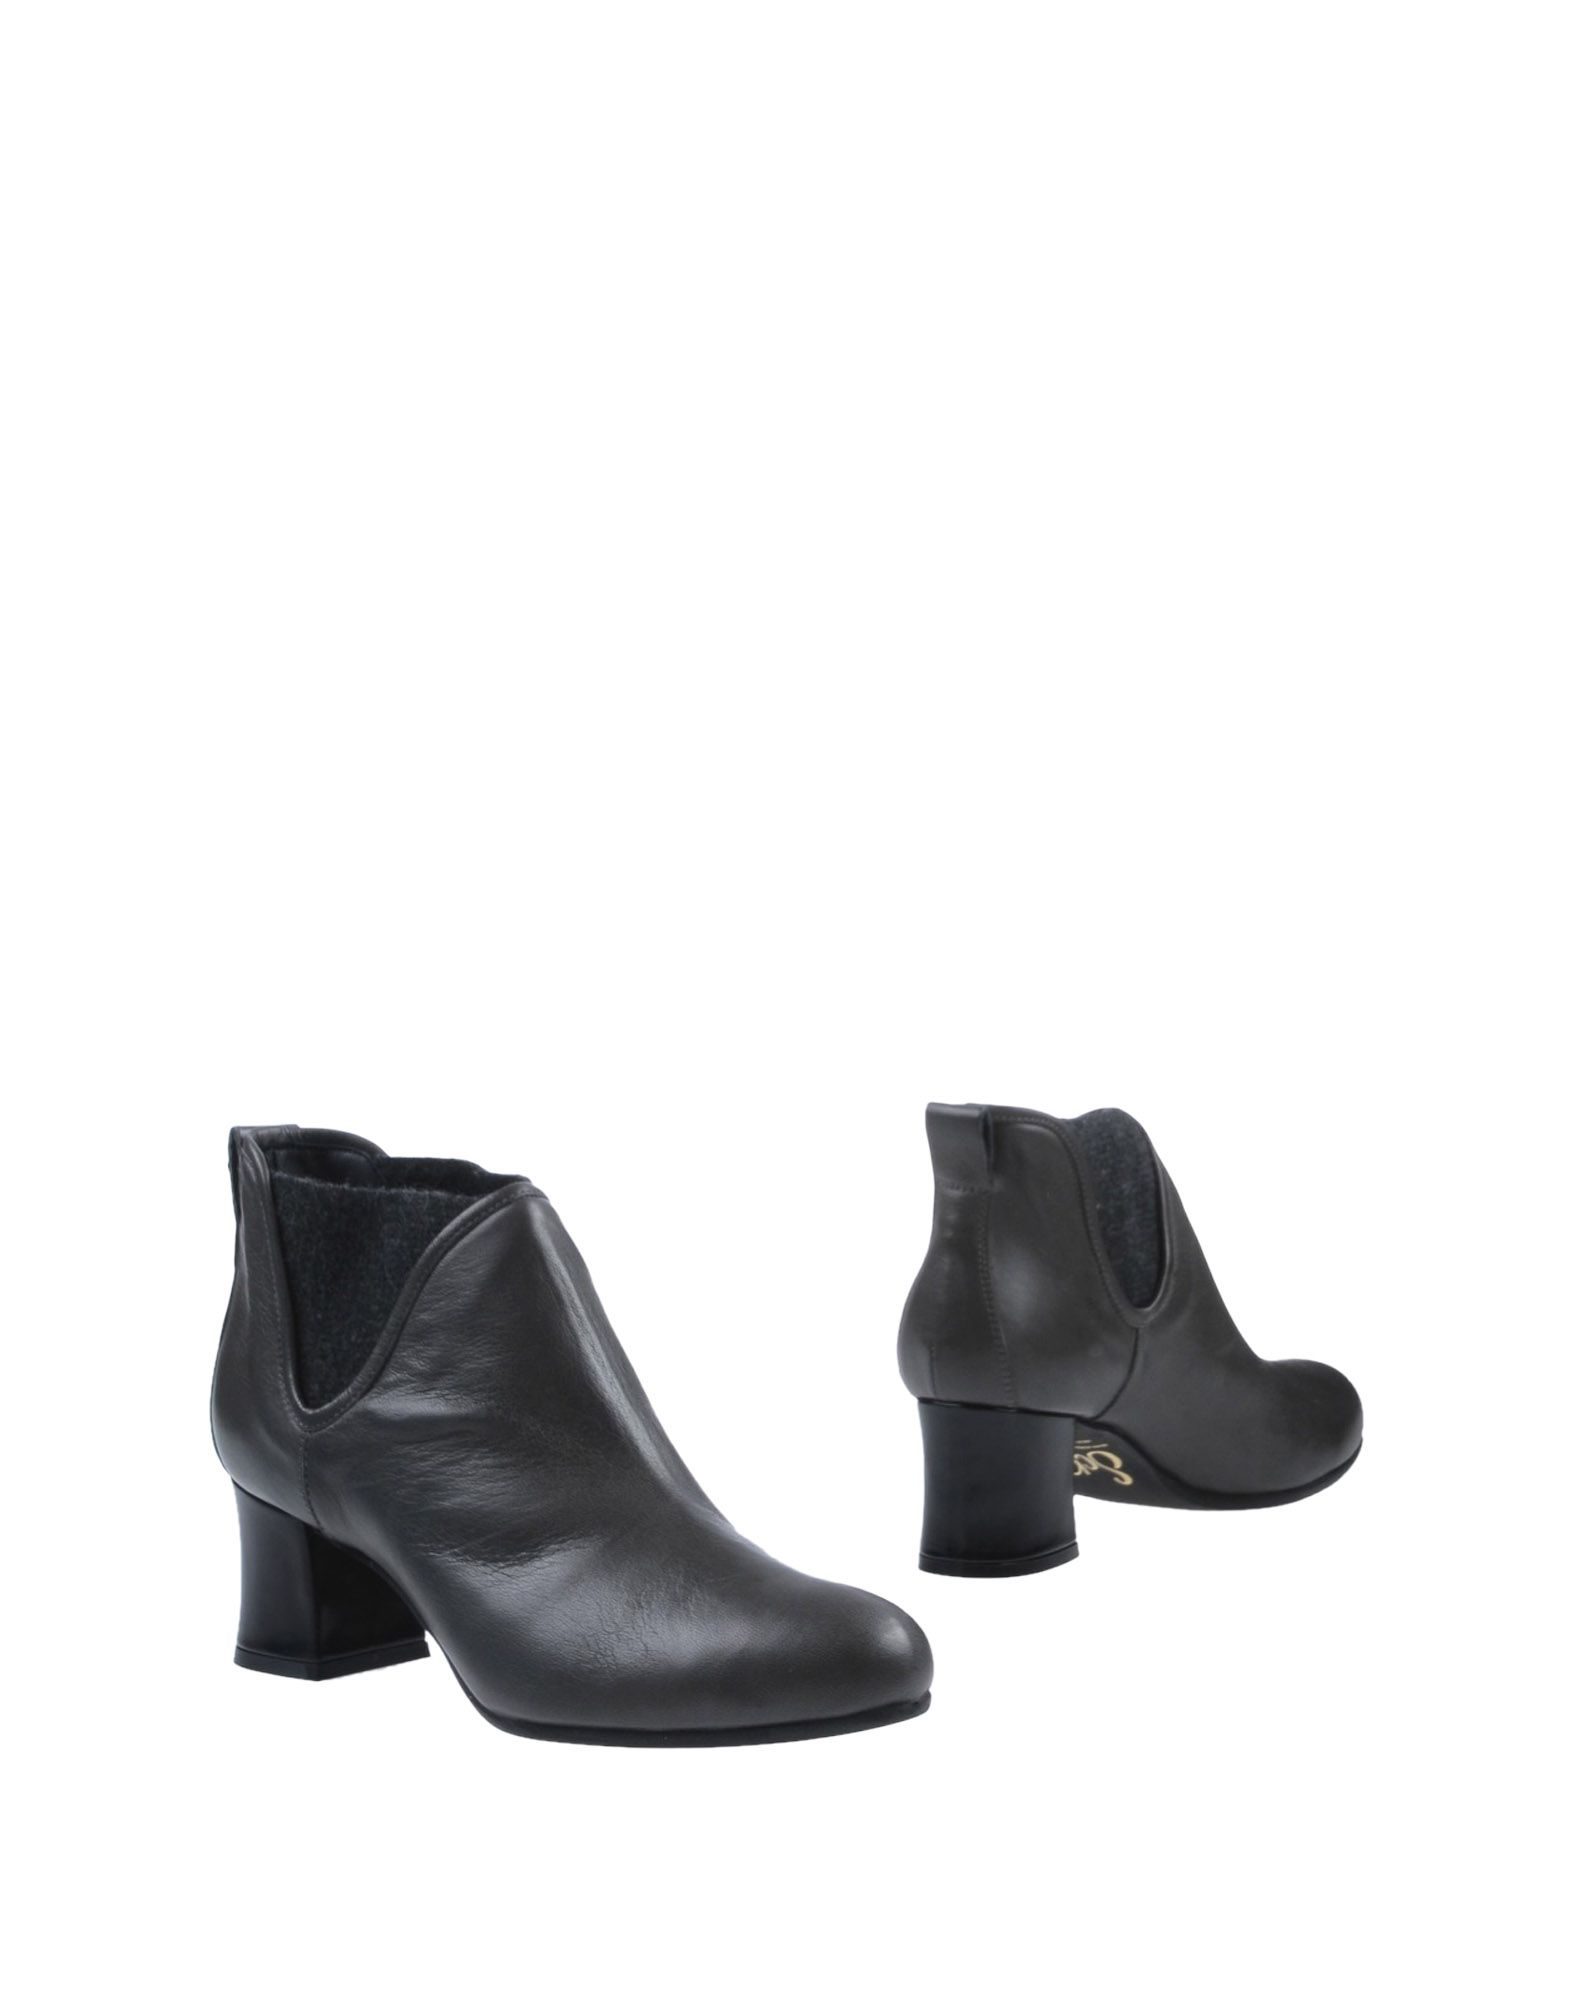 Chelsea Boots Sgn Giancarlo Paoli Donna - 11310629HH